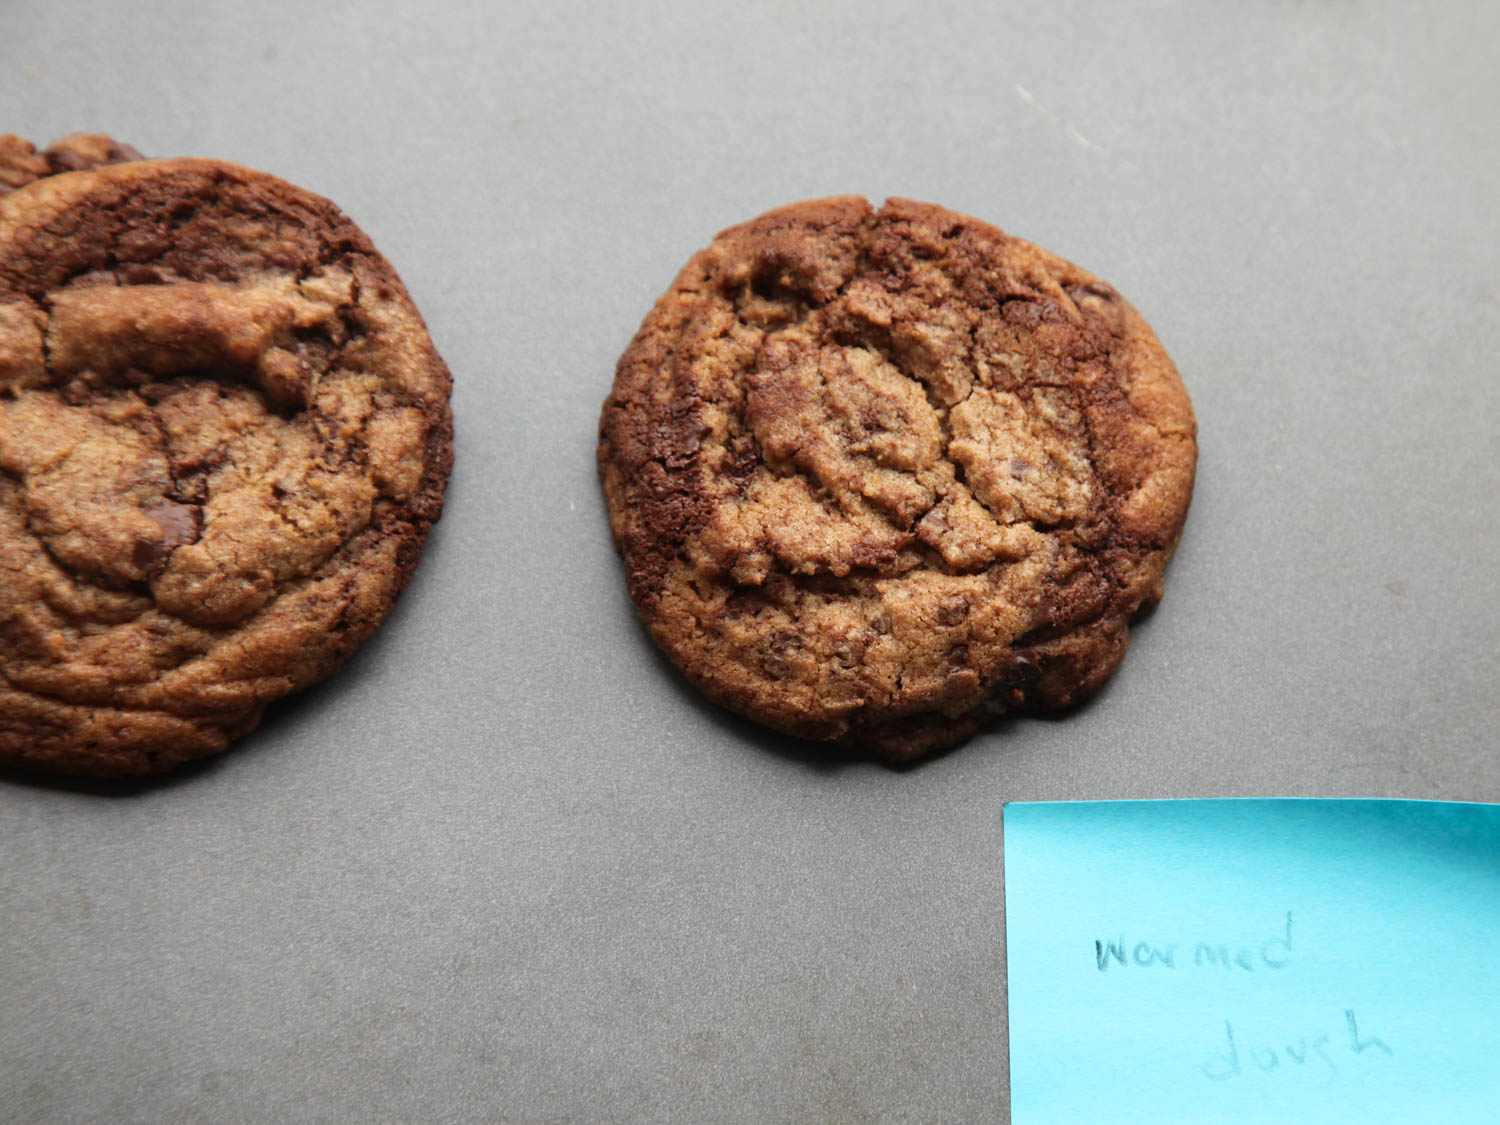 A baked chocolate chip cookie showing chocolate swirl that was the result of warmed cookie dough.